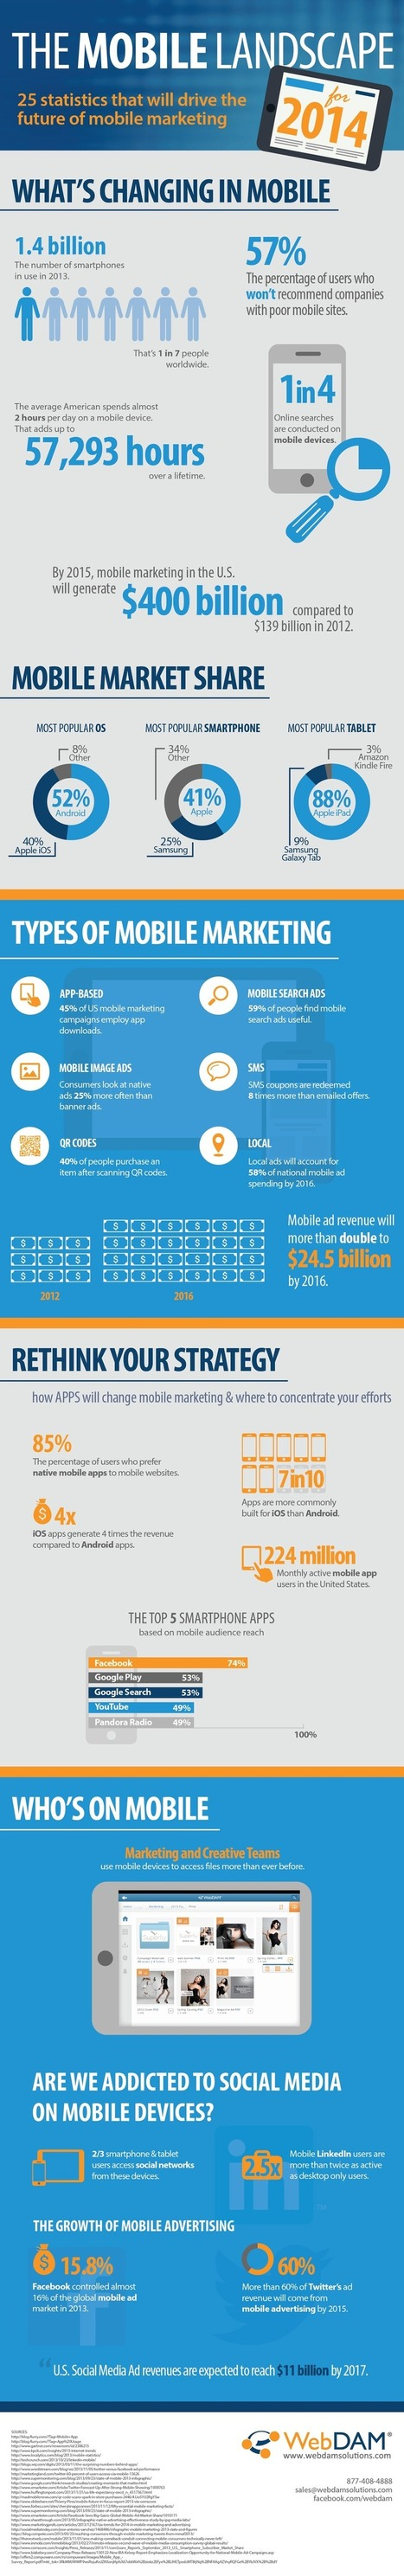 The mobile landscape for 2014 and beyond (Infographic) | Roadkill Marketing Cafe Insights and Foresights. | Scoop.it